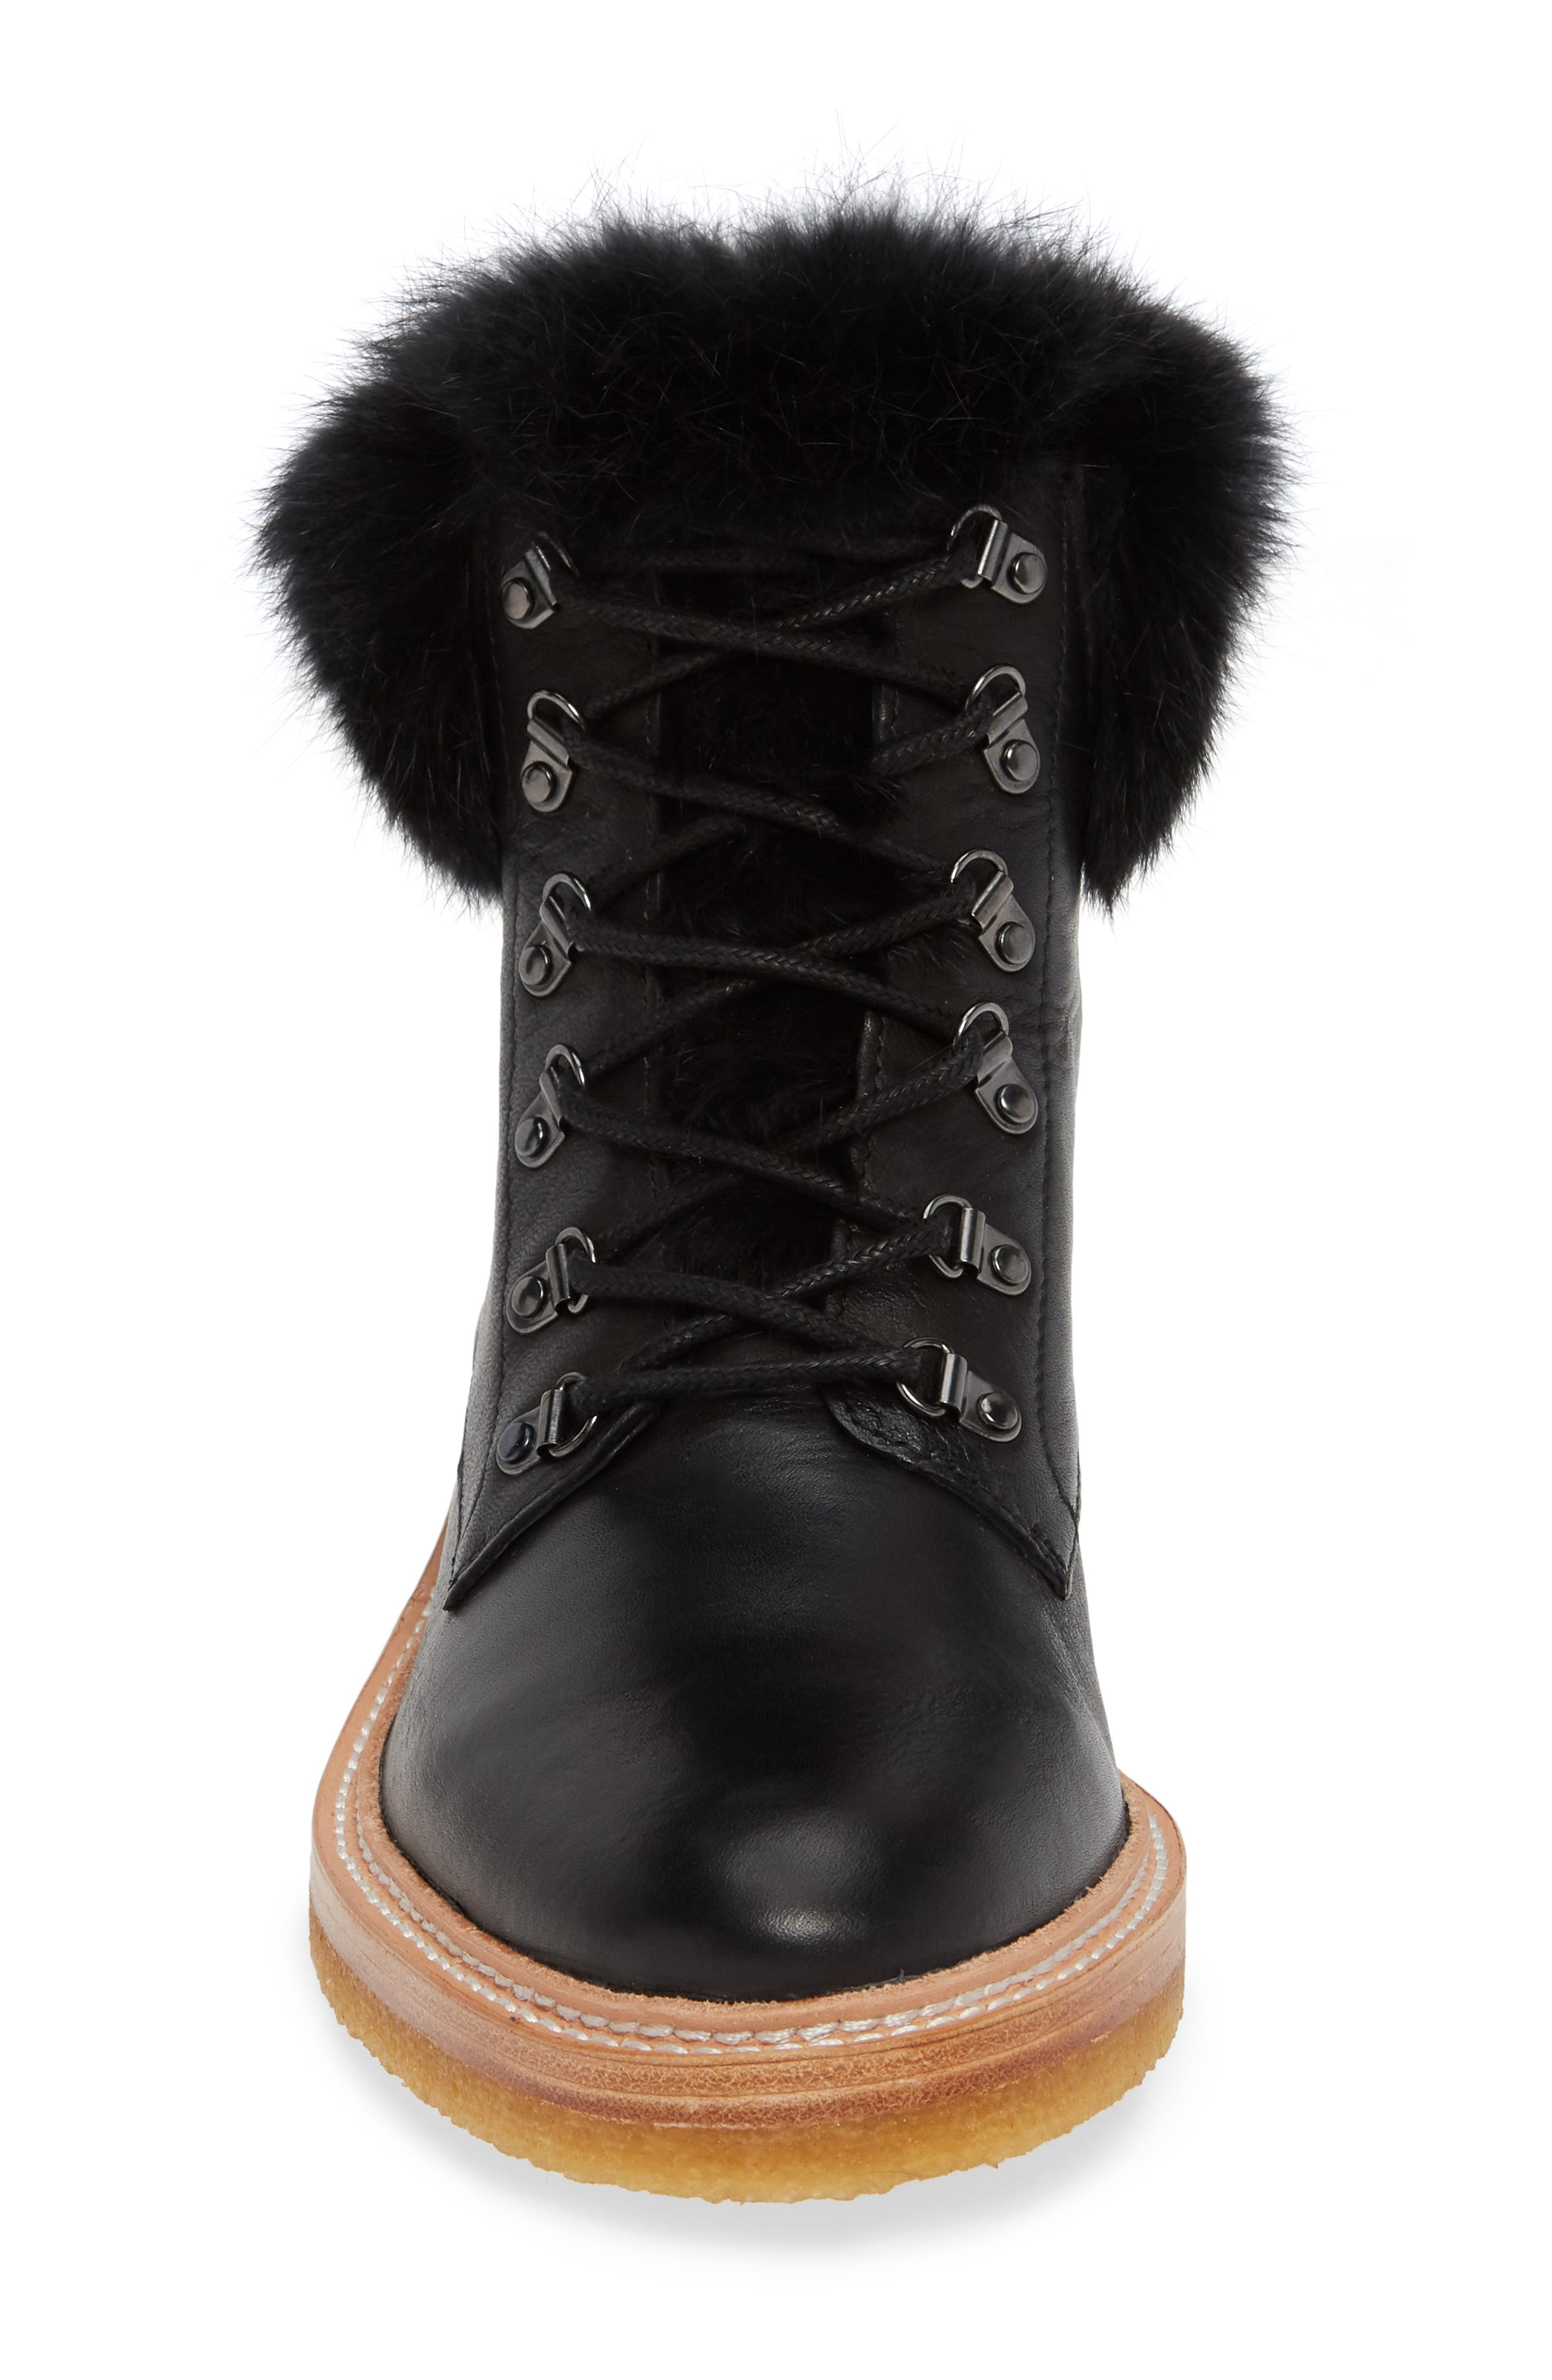 Winter Genuine Rabbit Fur Trim Boot,                             Alternate thumbnail 4, color,                             BLACK LEATHER